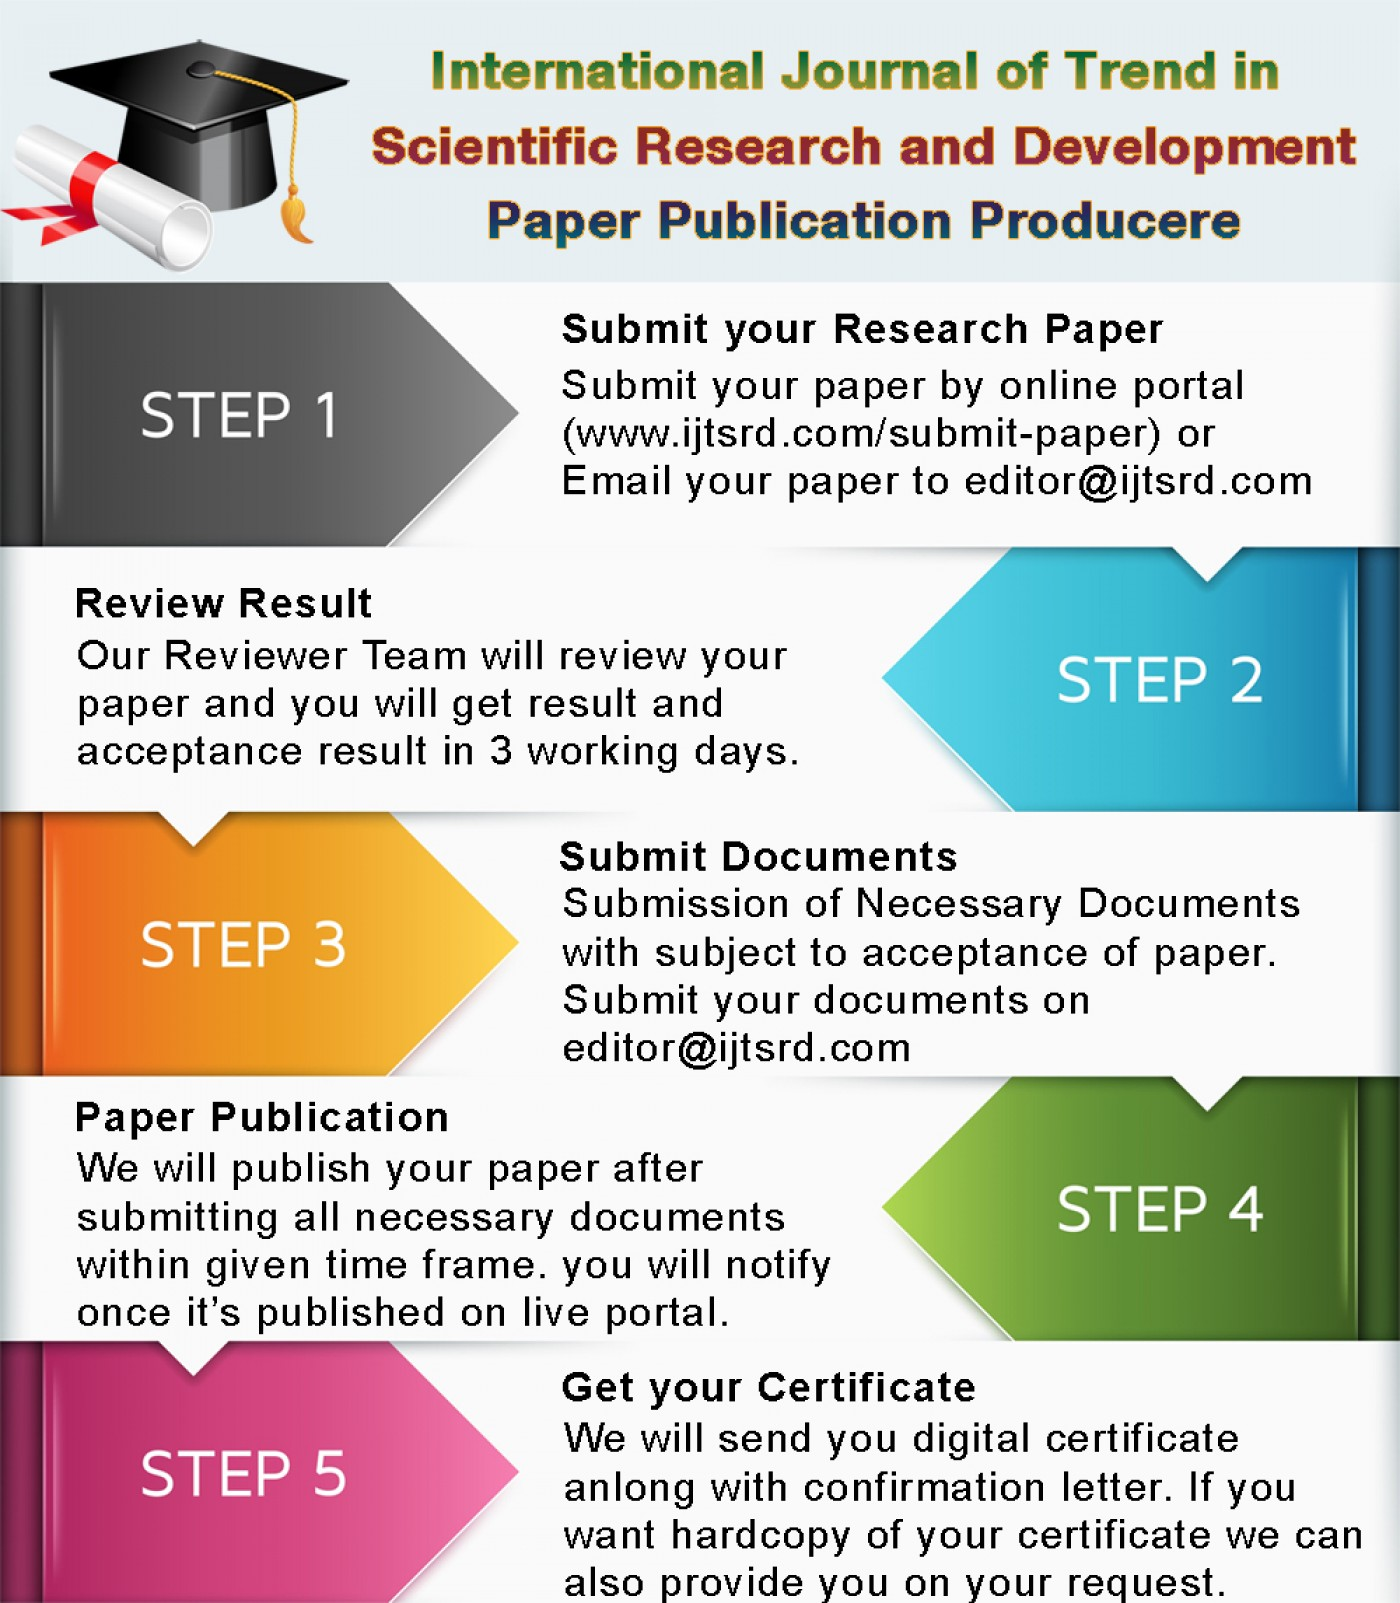 007 Best Journals To Publish Researchs Ijtsrd Producere Stunning Research Papers In Computer Science List Of 1400